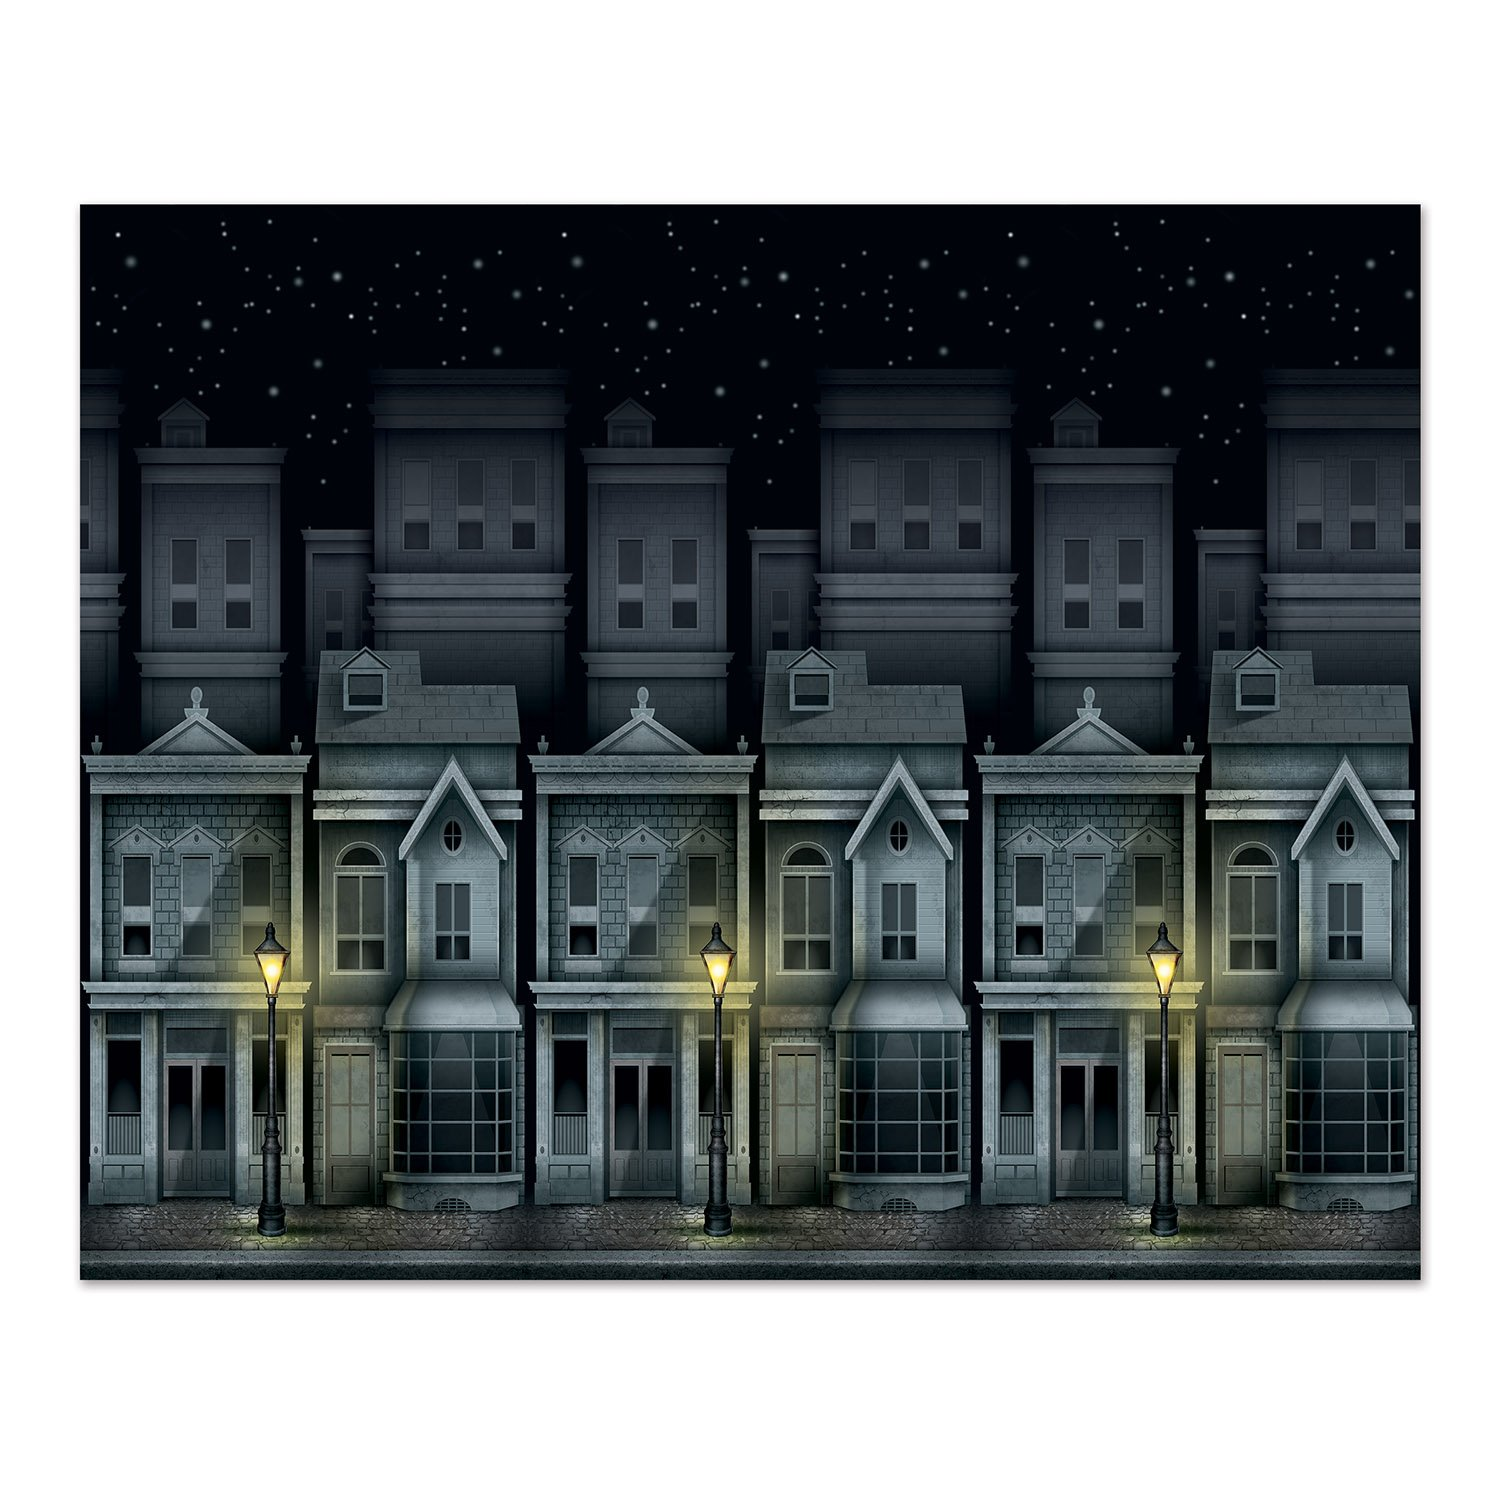 Beistle 52190 Victorian Townscape Backdrop, 4' x 30' by Beistle